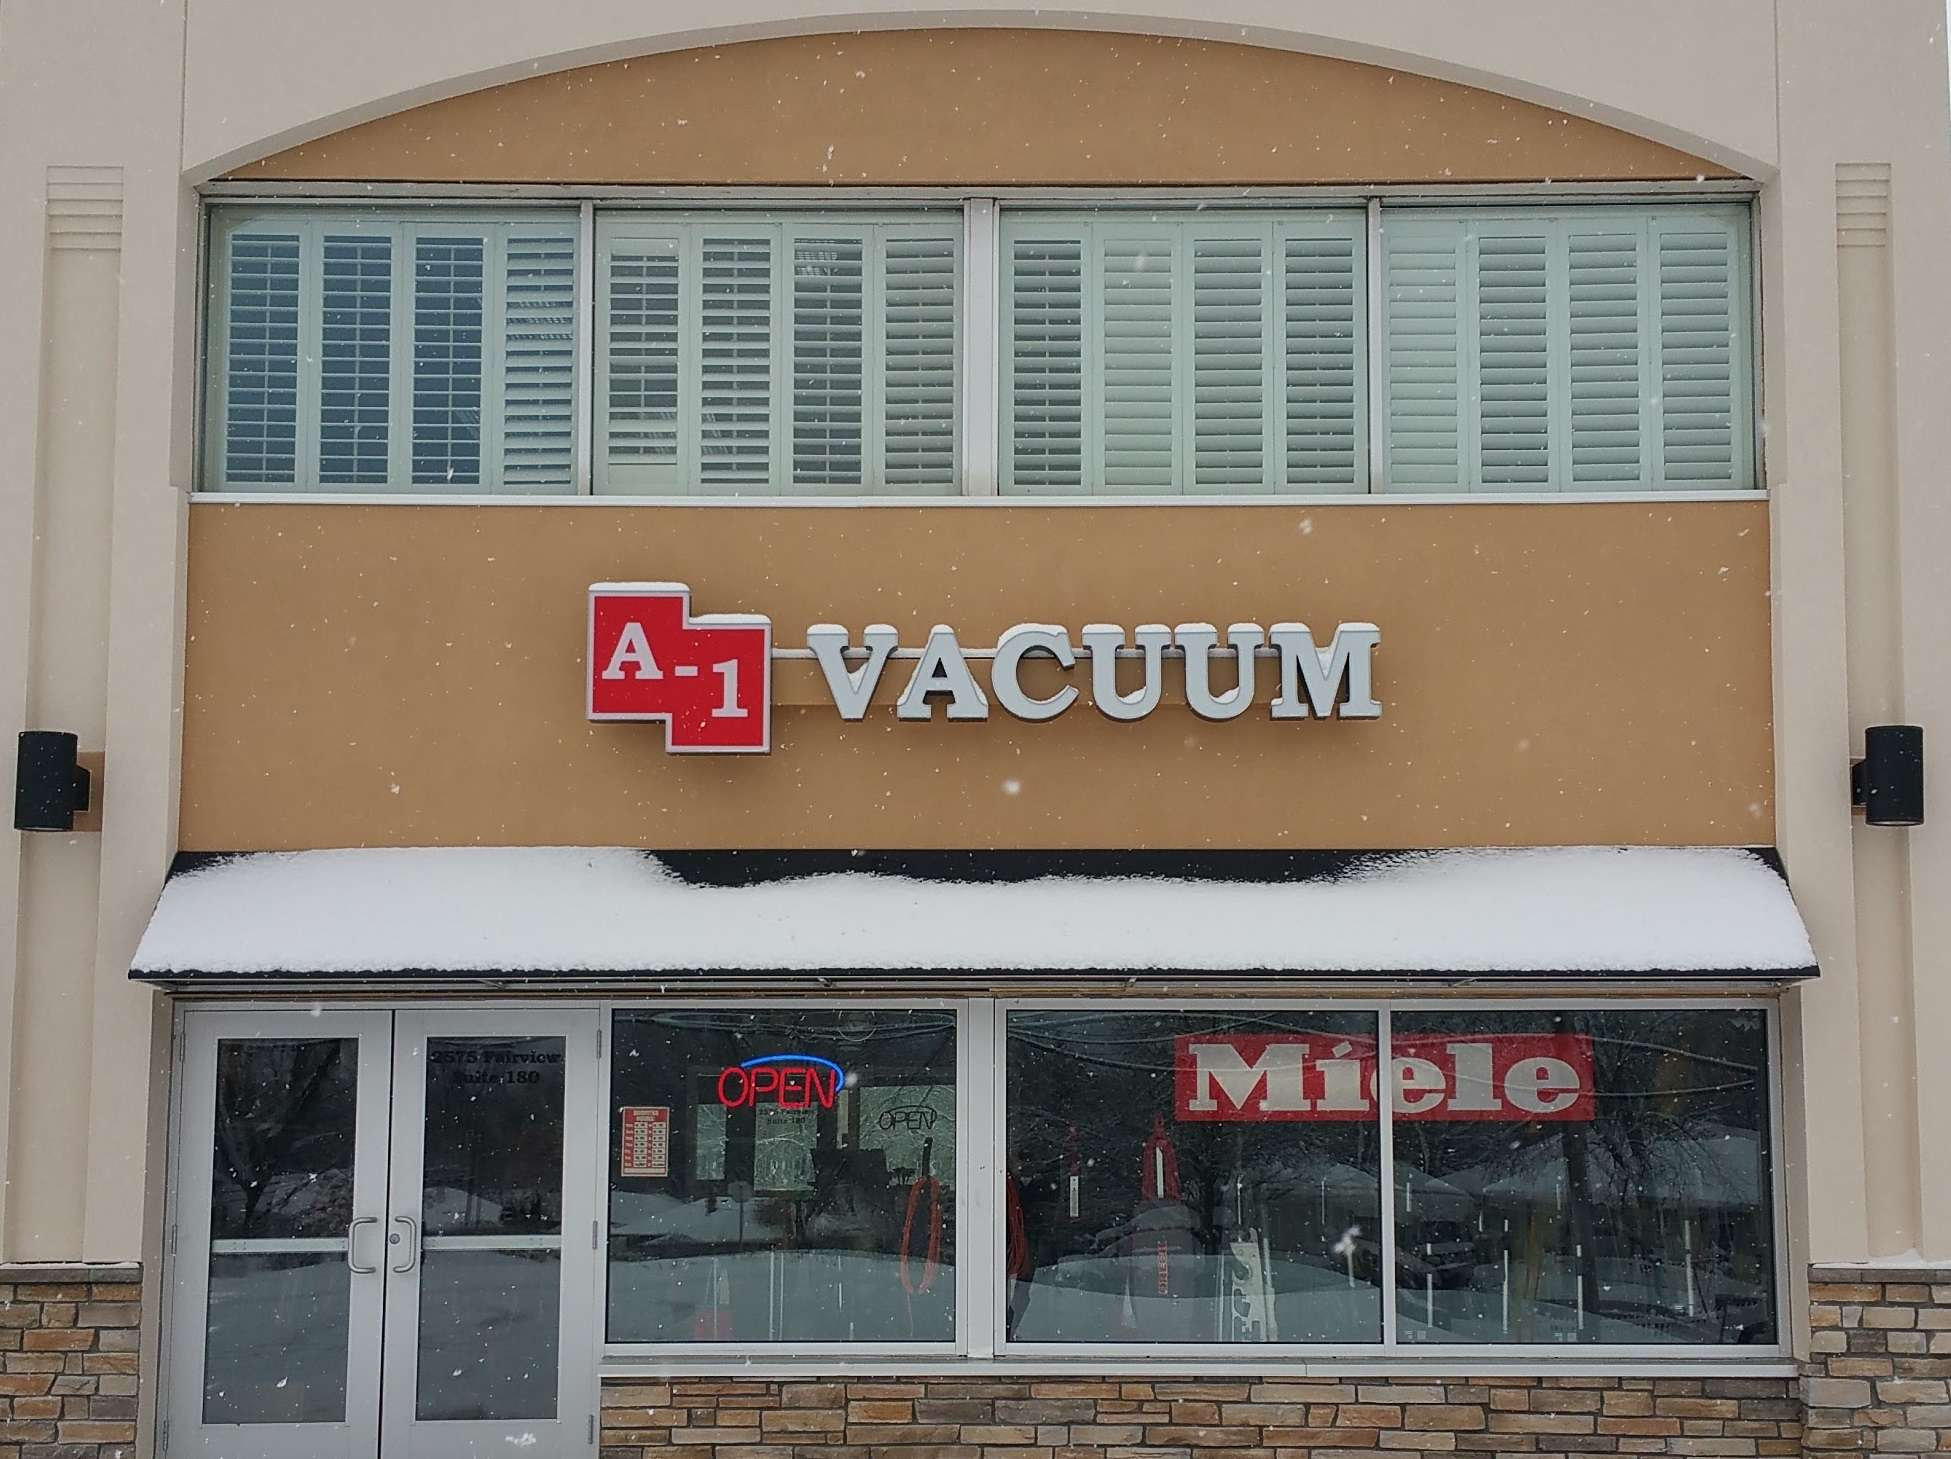 Wintery Home of A-1 Vacuum